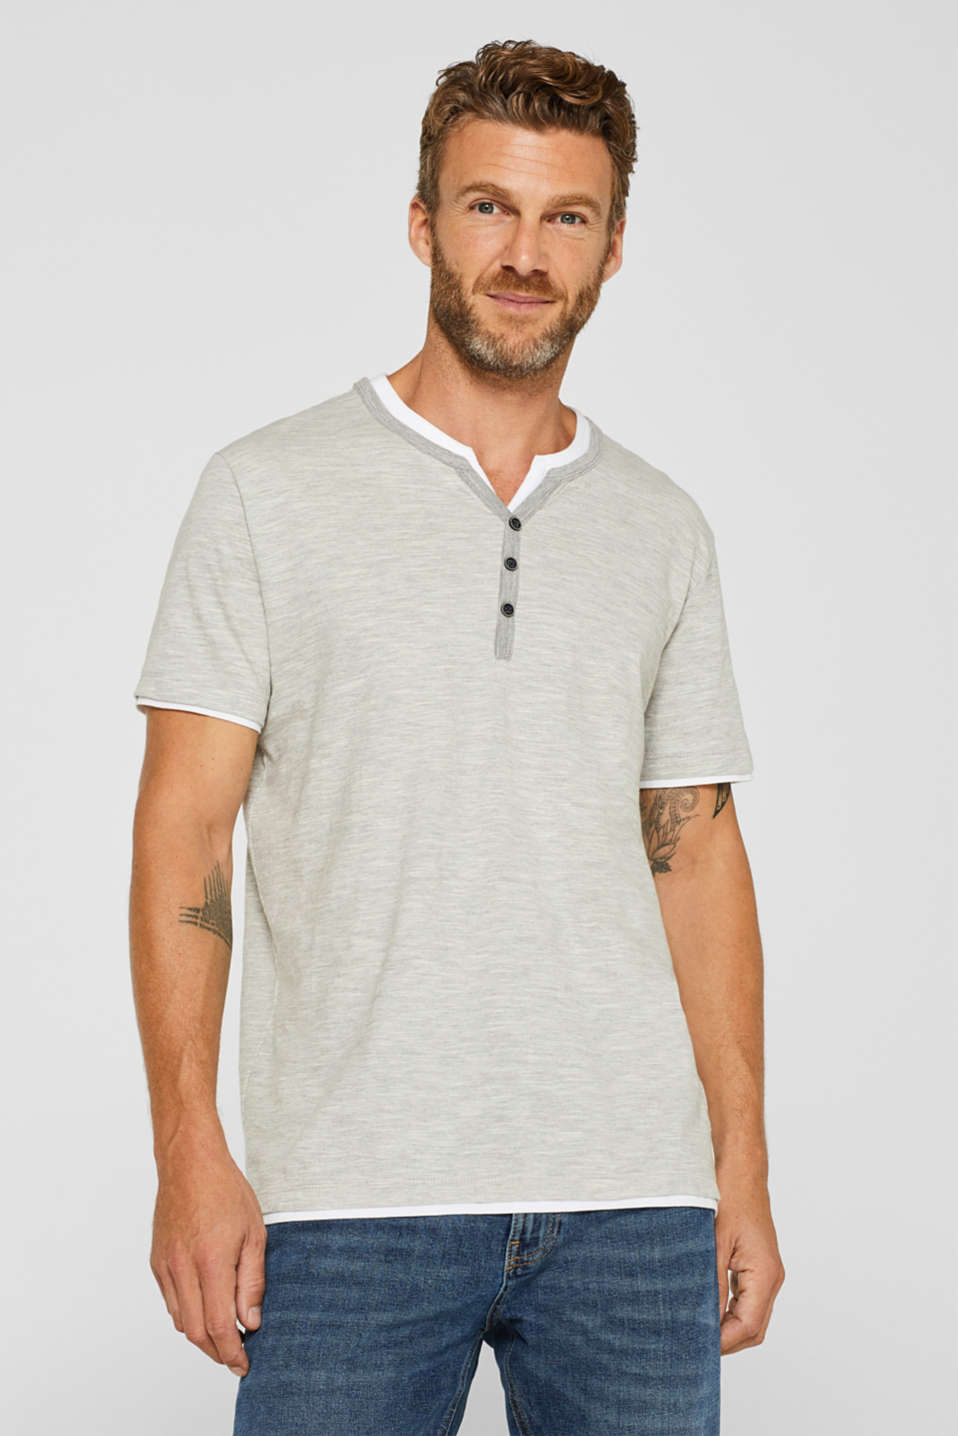 Layered slub jersey T-shirt